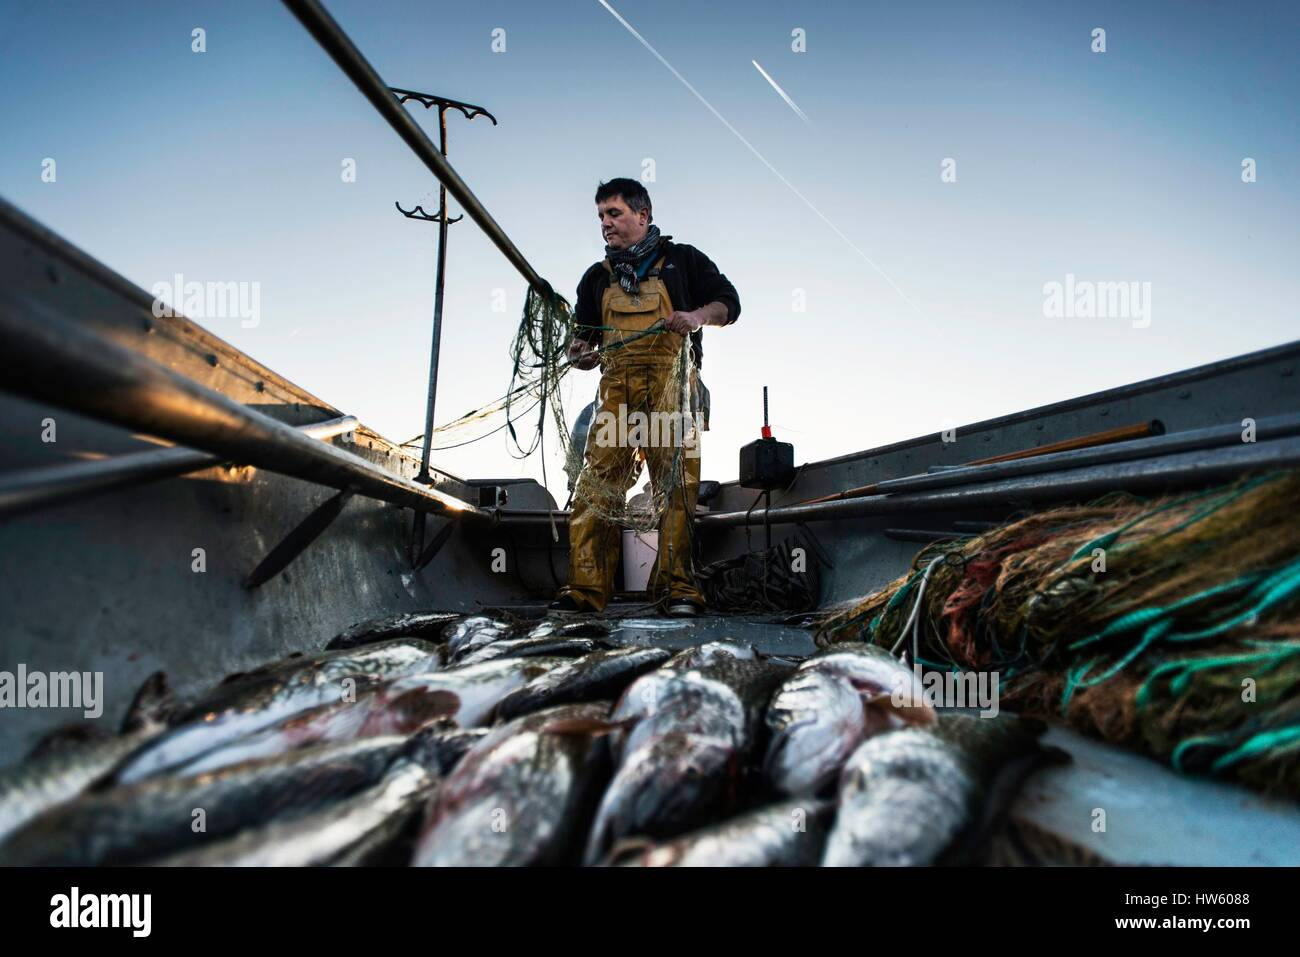 Switzerland, canton of Vaud, Morges, Manu Torrent, professional fisherman to Tolochenaz, opening day of the pike - Stock Image